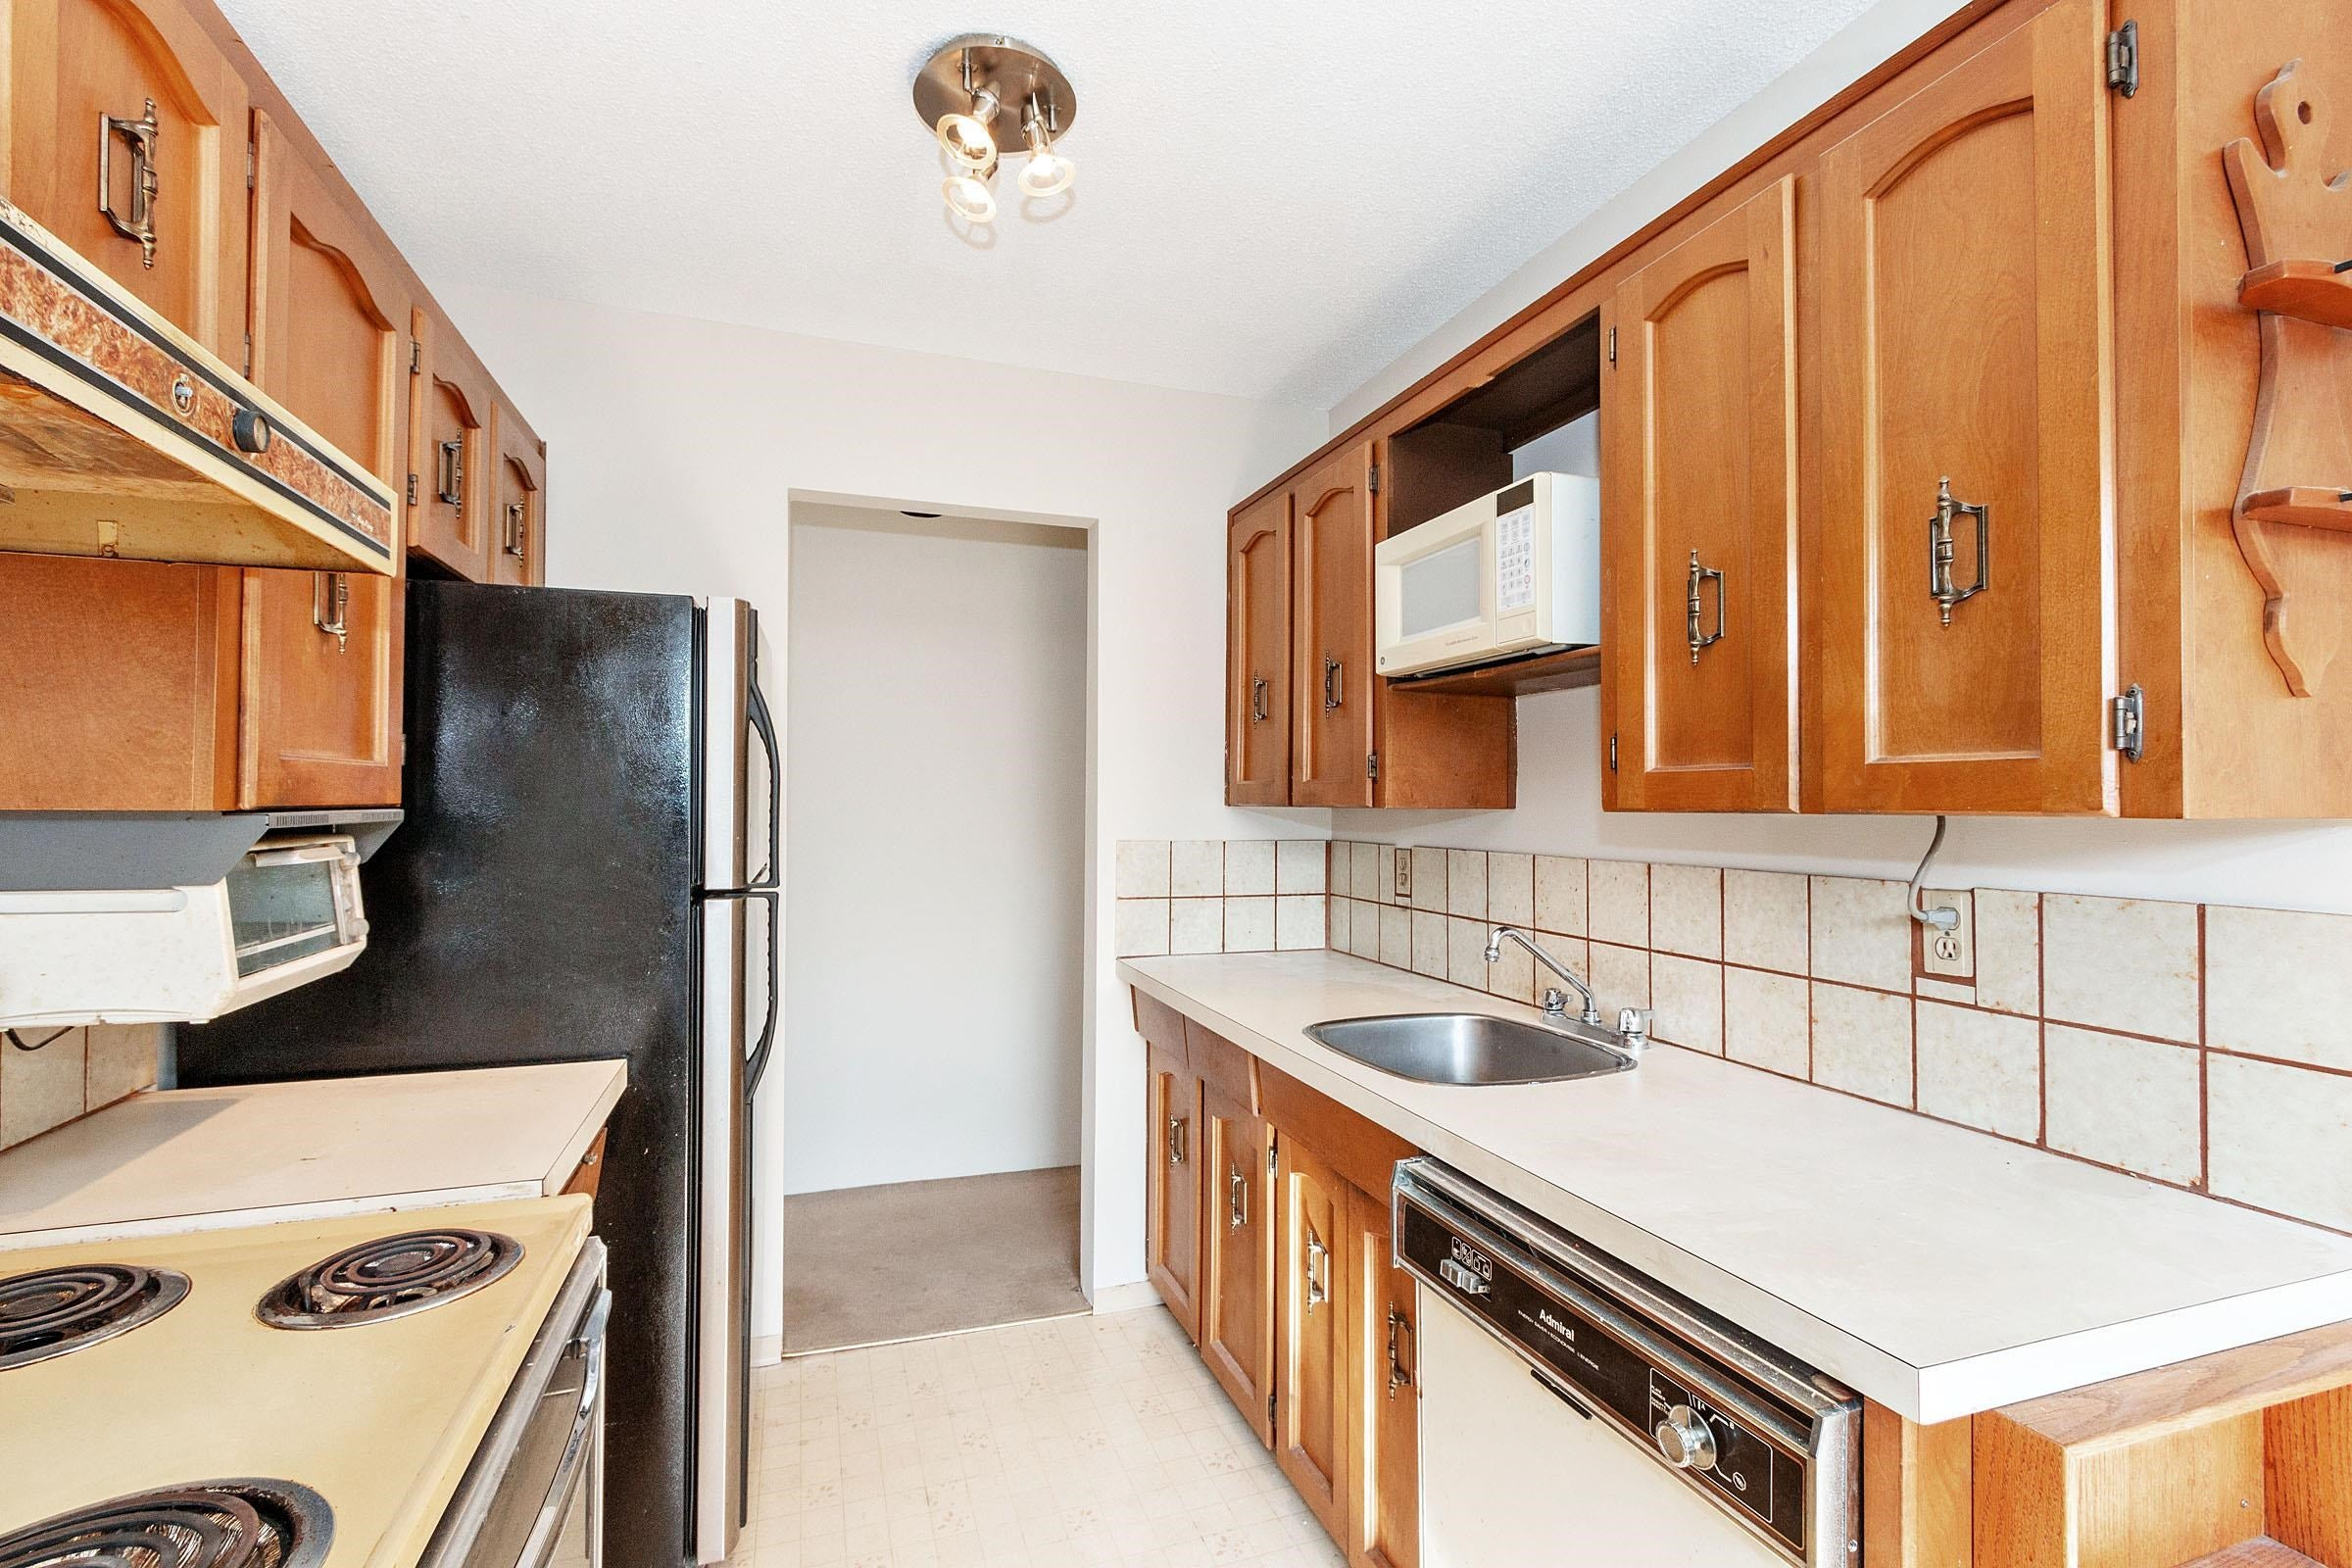 301 264 W 2ND STREET - Lower Lonsdale Apartment/Condo for sale, 2 Bedrooms (R2625527) - #9